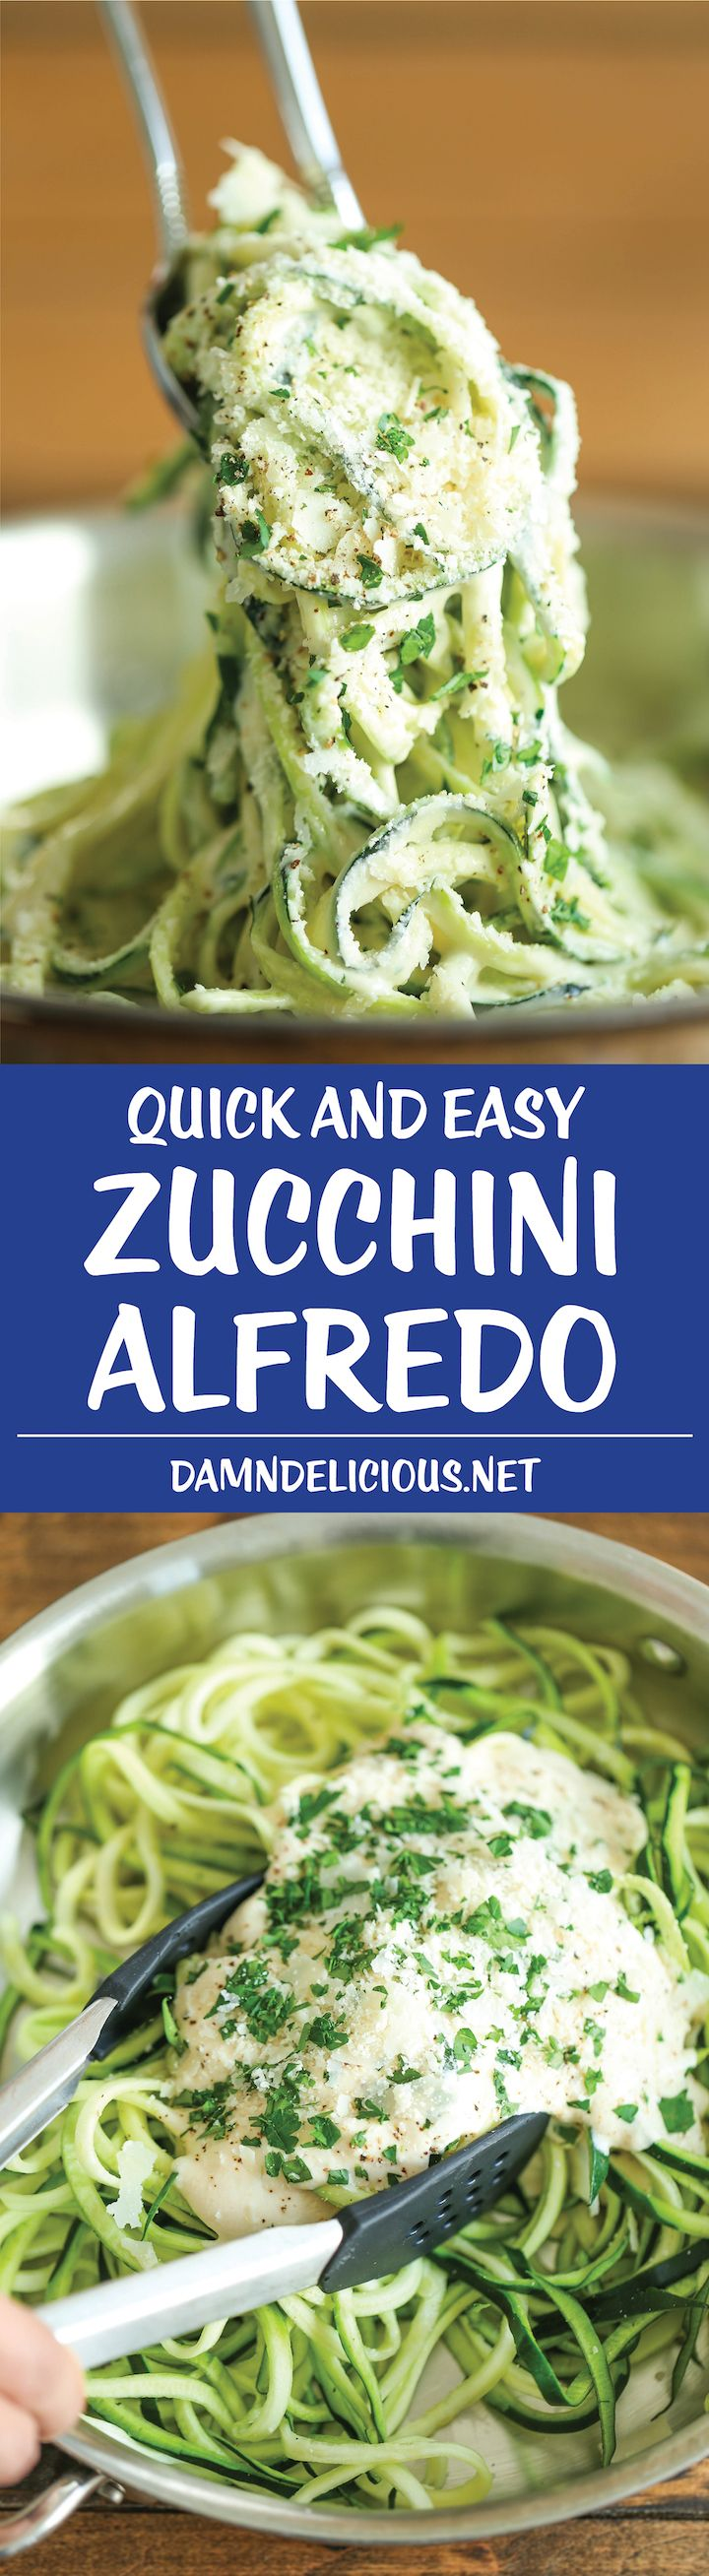 Zucchini Alfredo - Healthy, decadent, amazingly creamy AND low-carb. Finally, a guilt-less alfredo dish…